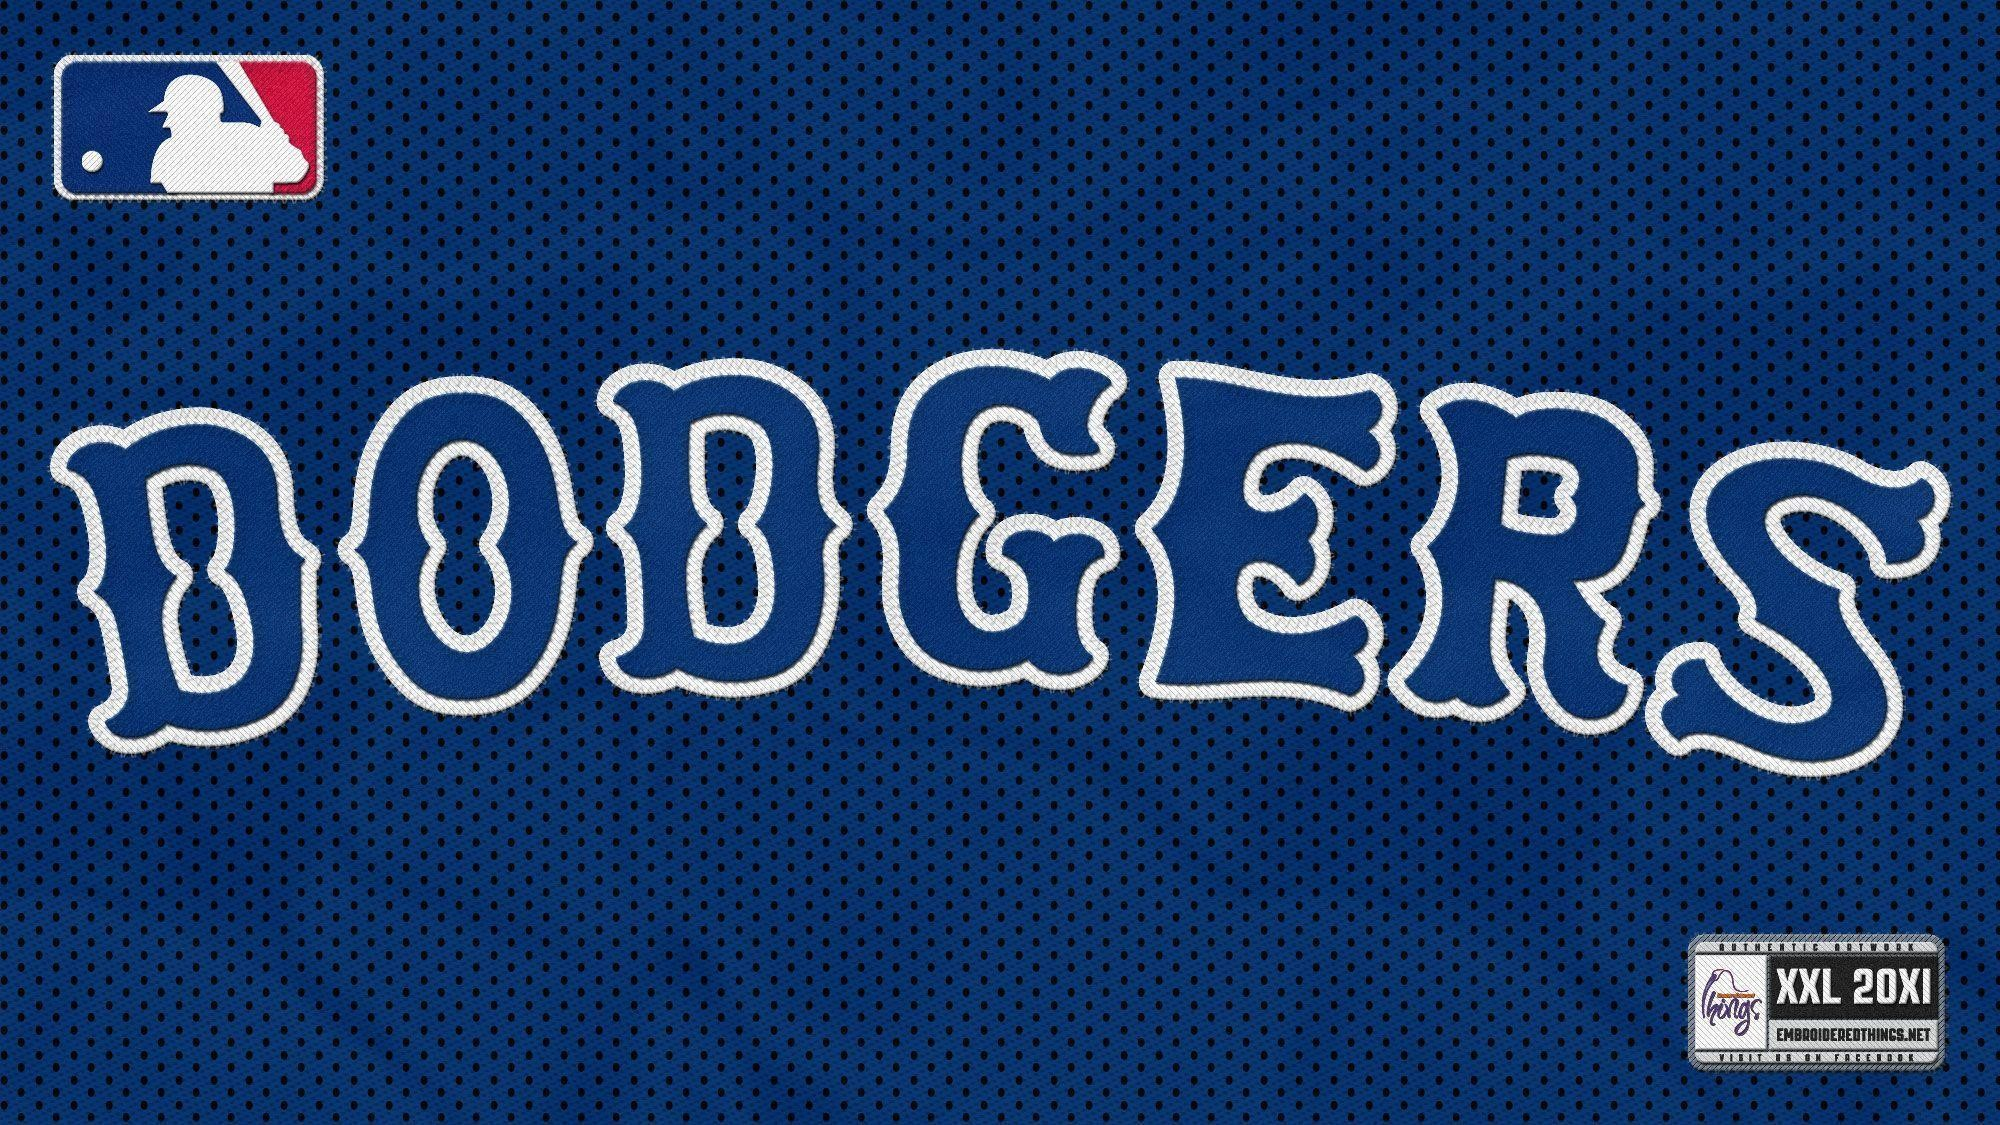 Los Angeles Dodgers wallpapers   Los Angeles Dodgers background .